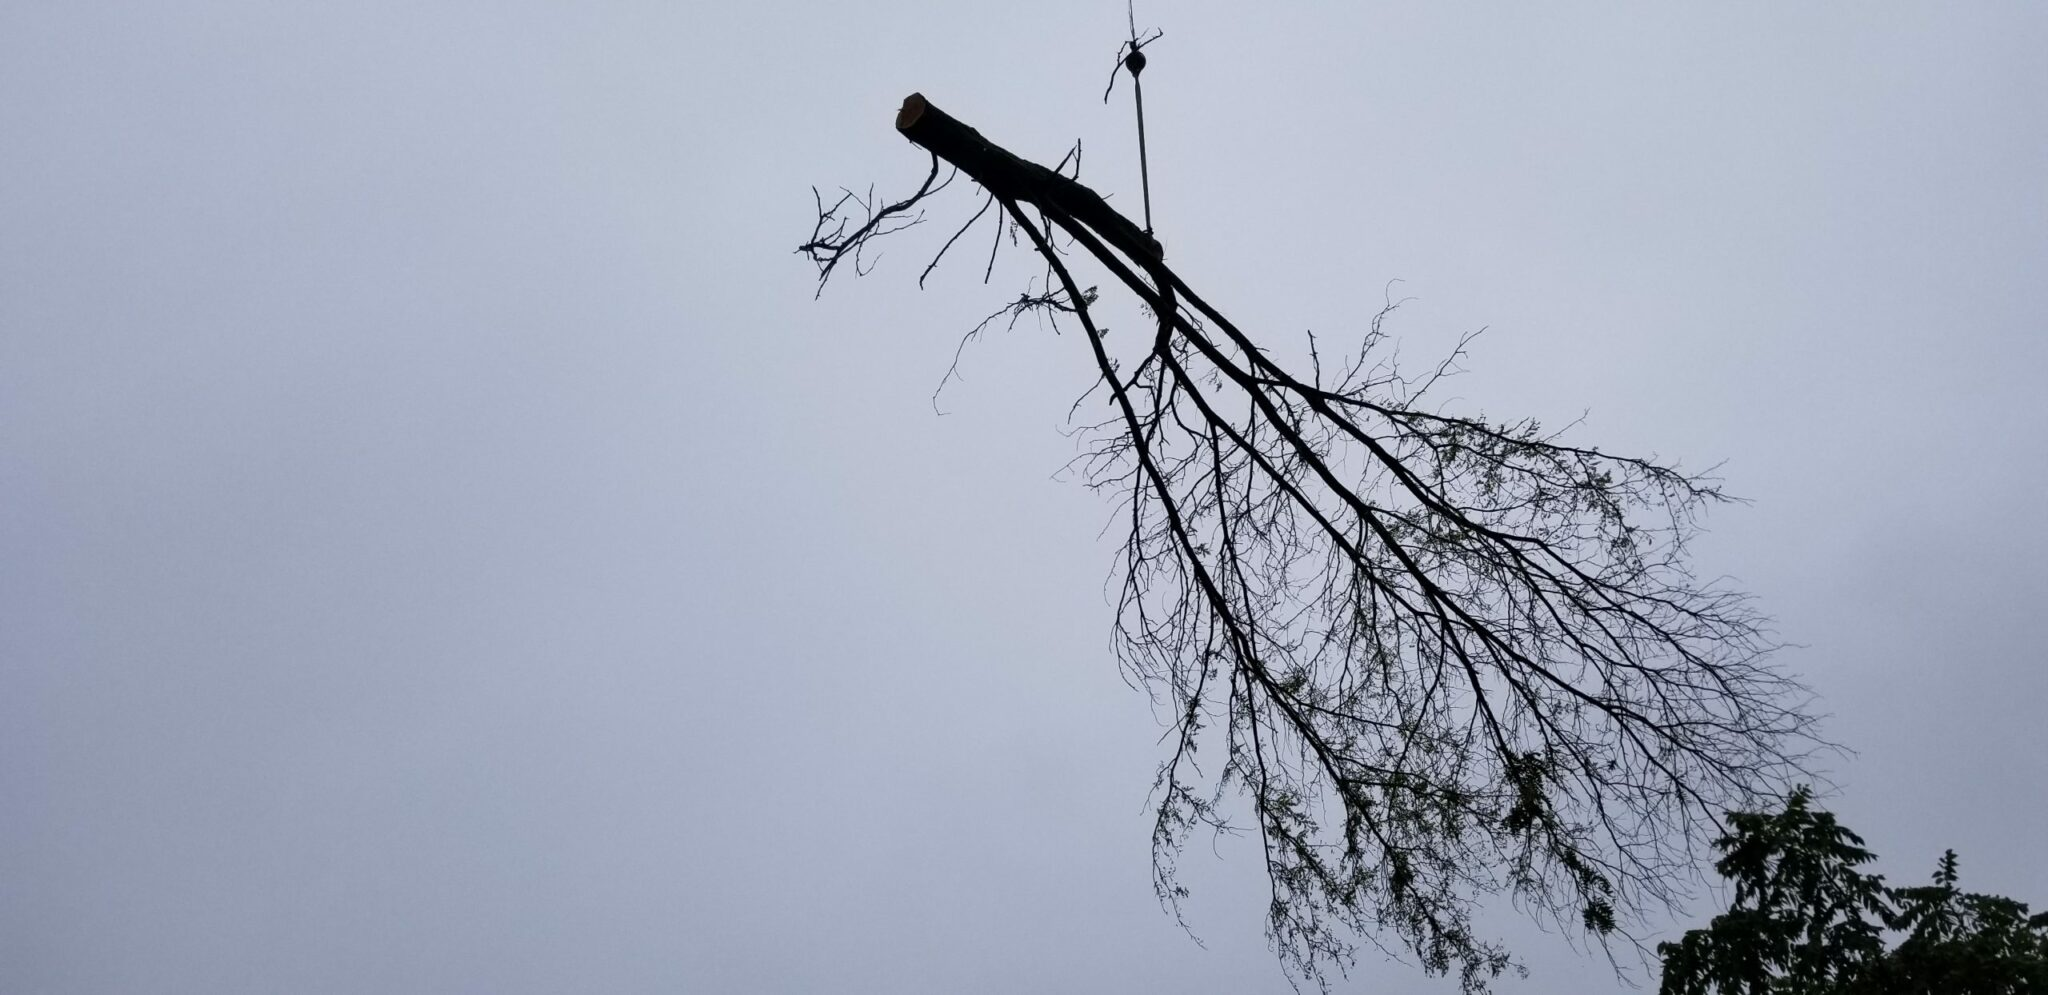 Removing branch from tree